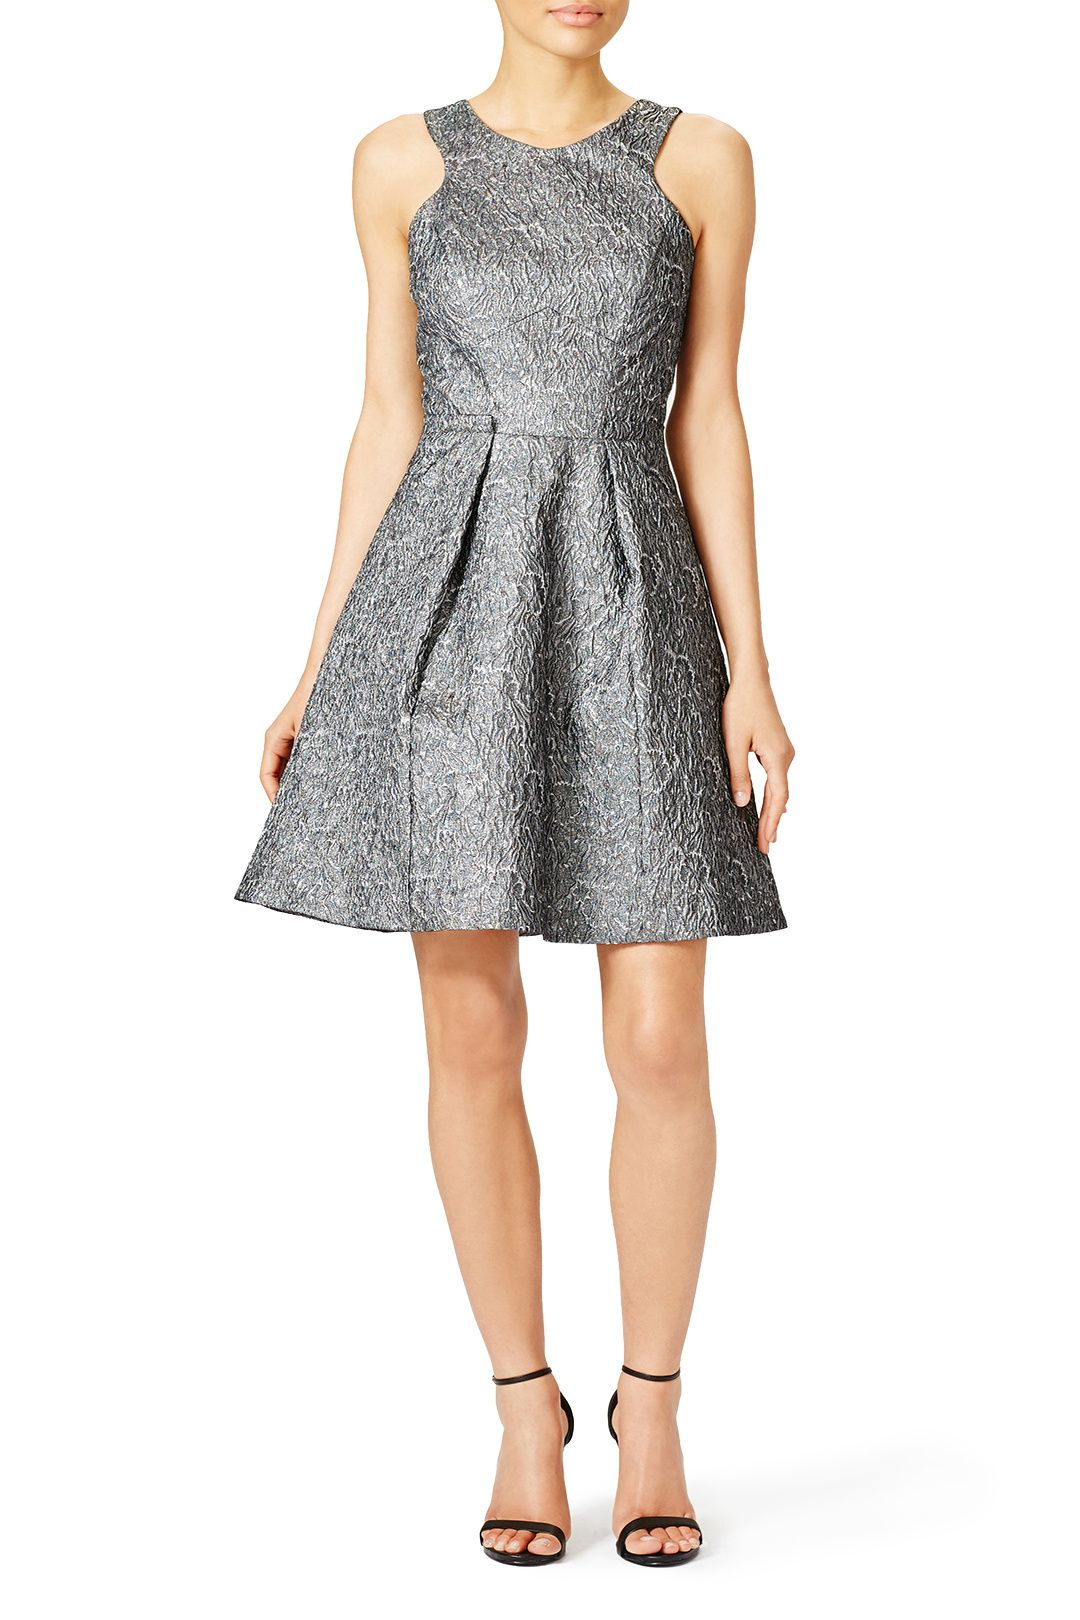 Metallic Gray Fit And Flare Dress Fall 2015 Wedding Guest Dress Ideas Cocktail Bridesmaid Dresses Guest Dresses Wedding Guest Dress [ 1620 x 1080 Pixel ]